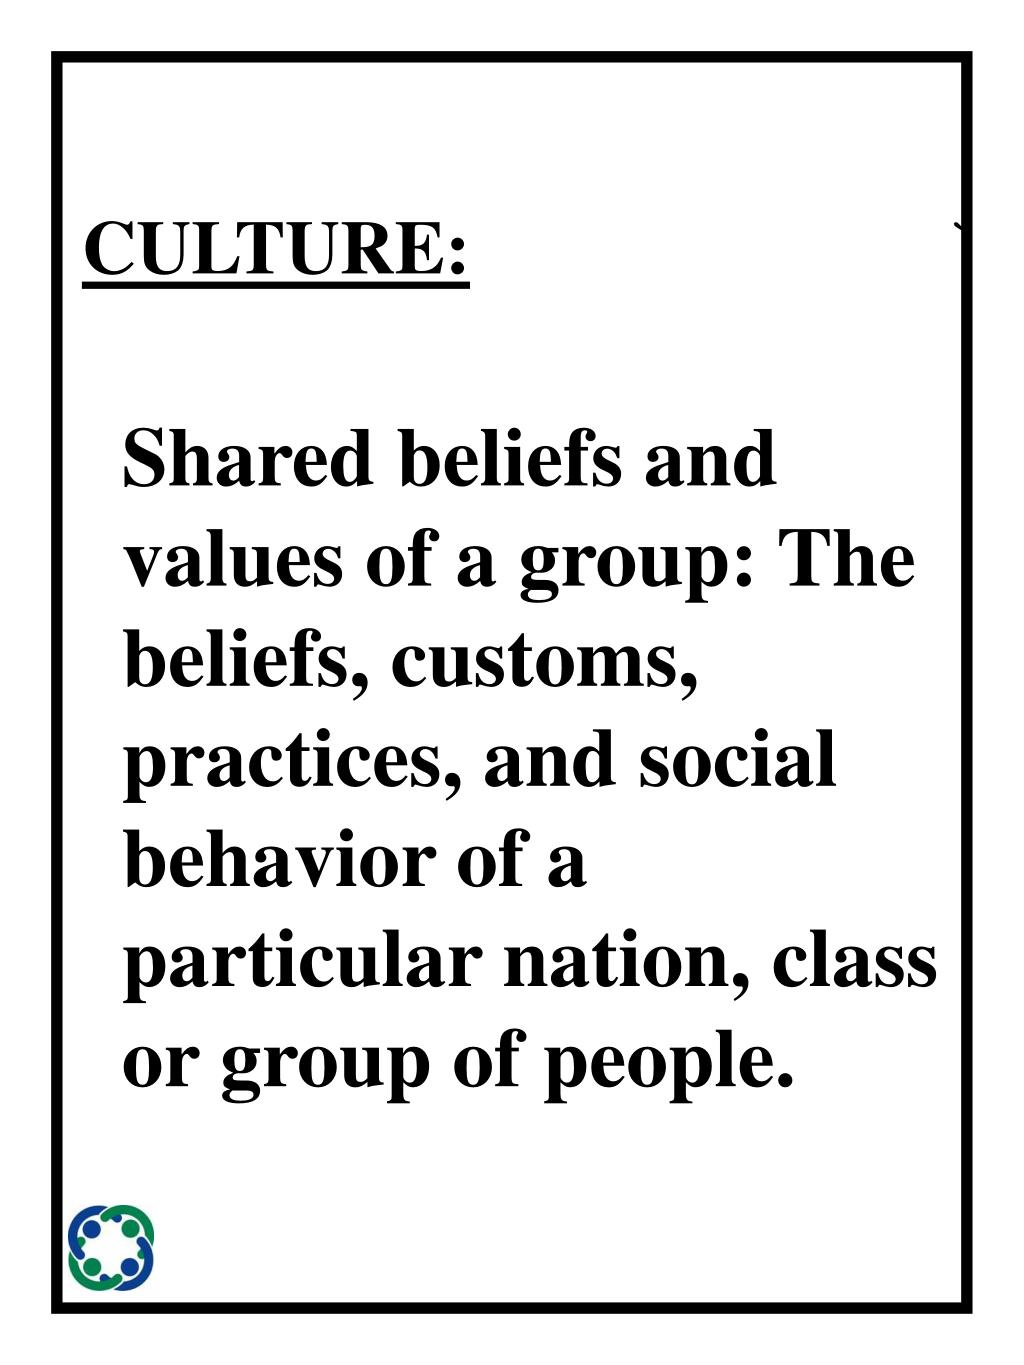 Shared beliefs and values of a group: The beliefs, customs, practices, and social behavior of a particular nation, class or group of people.